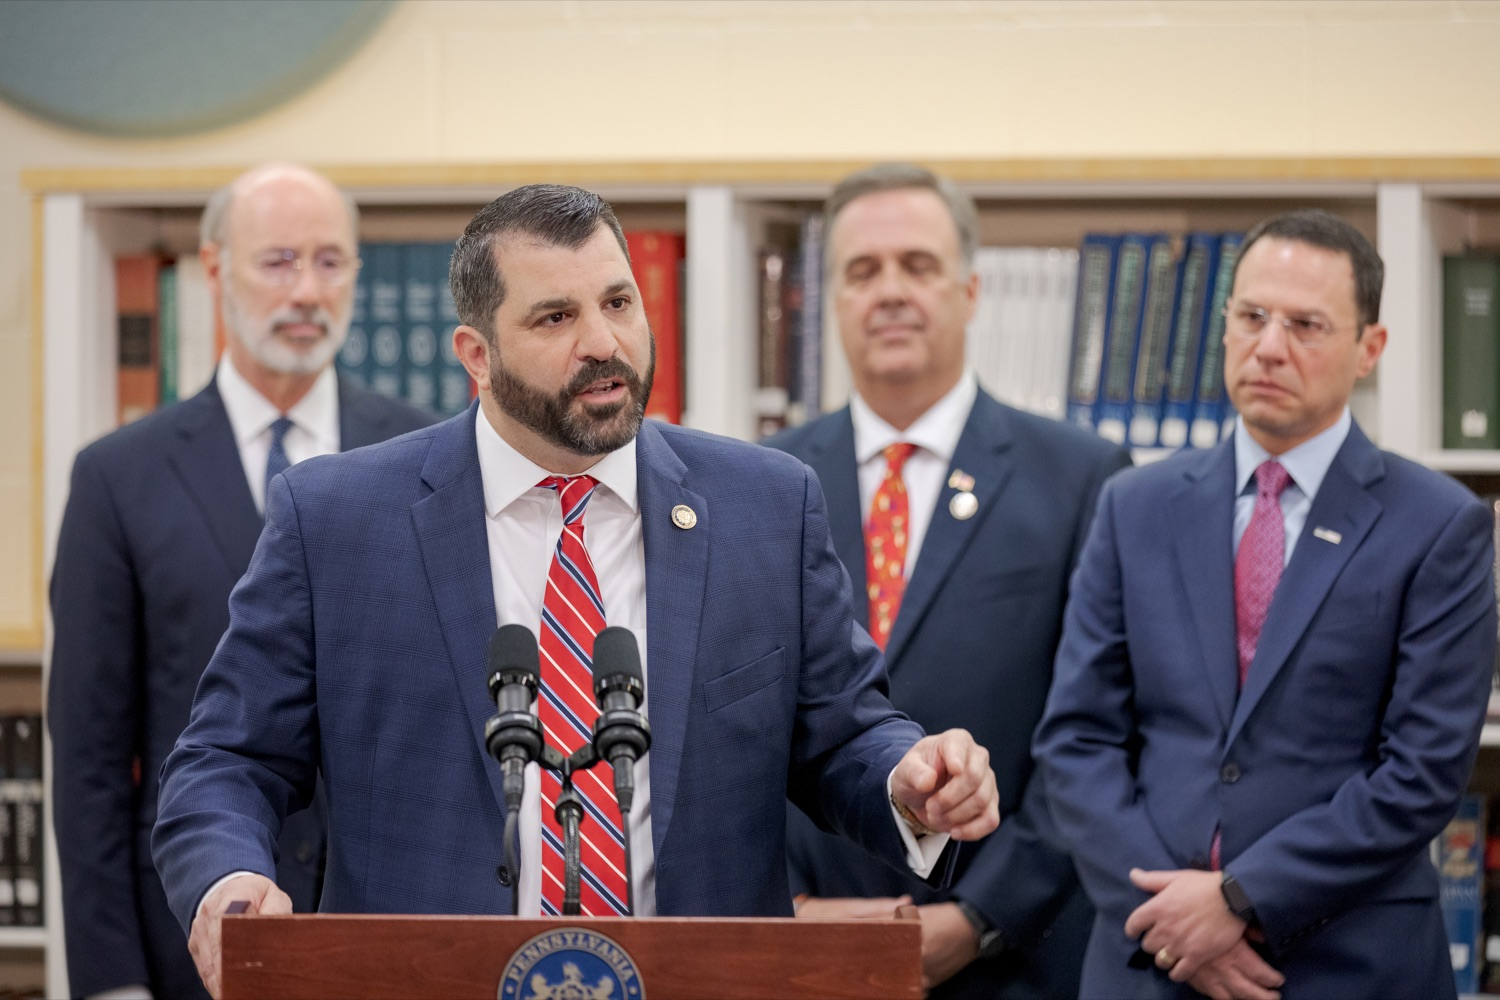 """<a href=""""http://filesource.abacast.com/commonwealthofpa/photo/17628_GOV_AG_Bill_Signing_NK_008.JPG"""" target=""""_blank"""">⇣Download Photo<br></a>State Rep. Mark Rozzi, a survivor of childhood sexual abuse, speaks before signing a package of three bills, which mirror three of the Grand Jurys recommendations on addressing the statute of limitations for victims of child sexual abuse, inside Muhlenberg High School on Tuesday, November 26, 2019. i"""